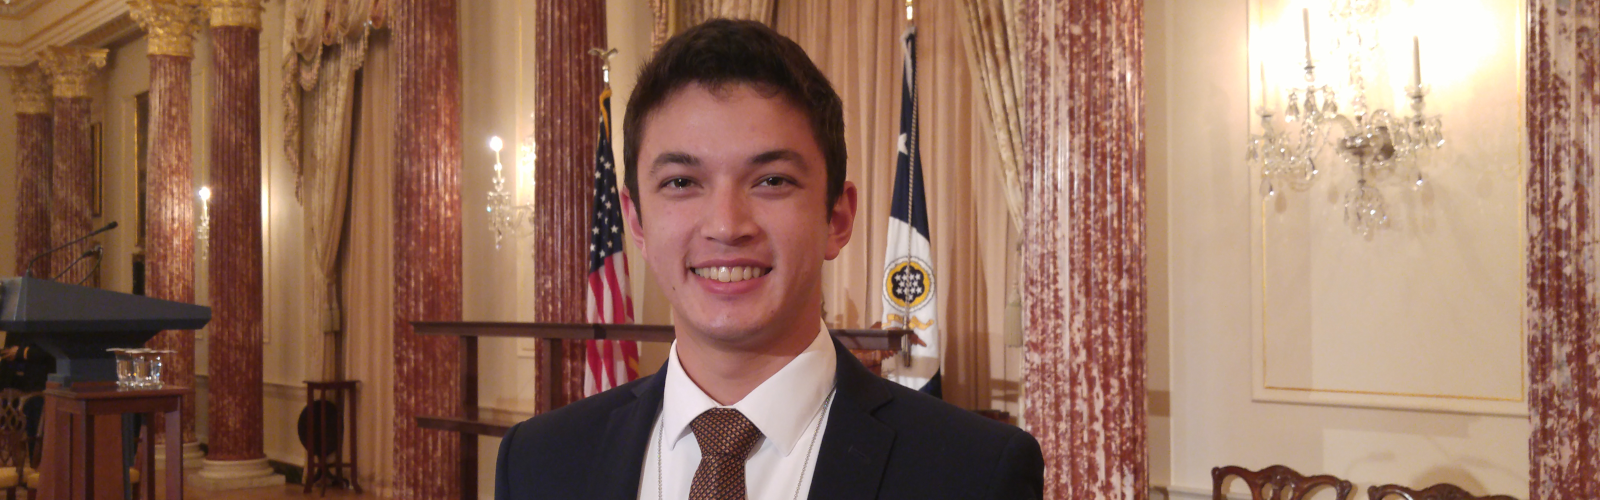 student Glehn Von Loh in Washington, DC